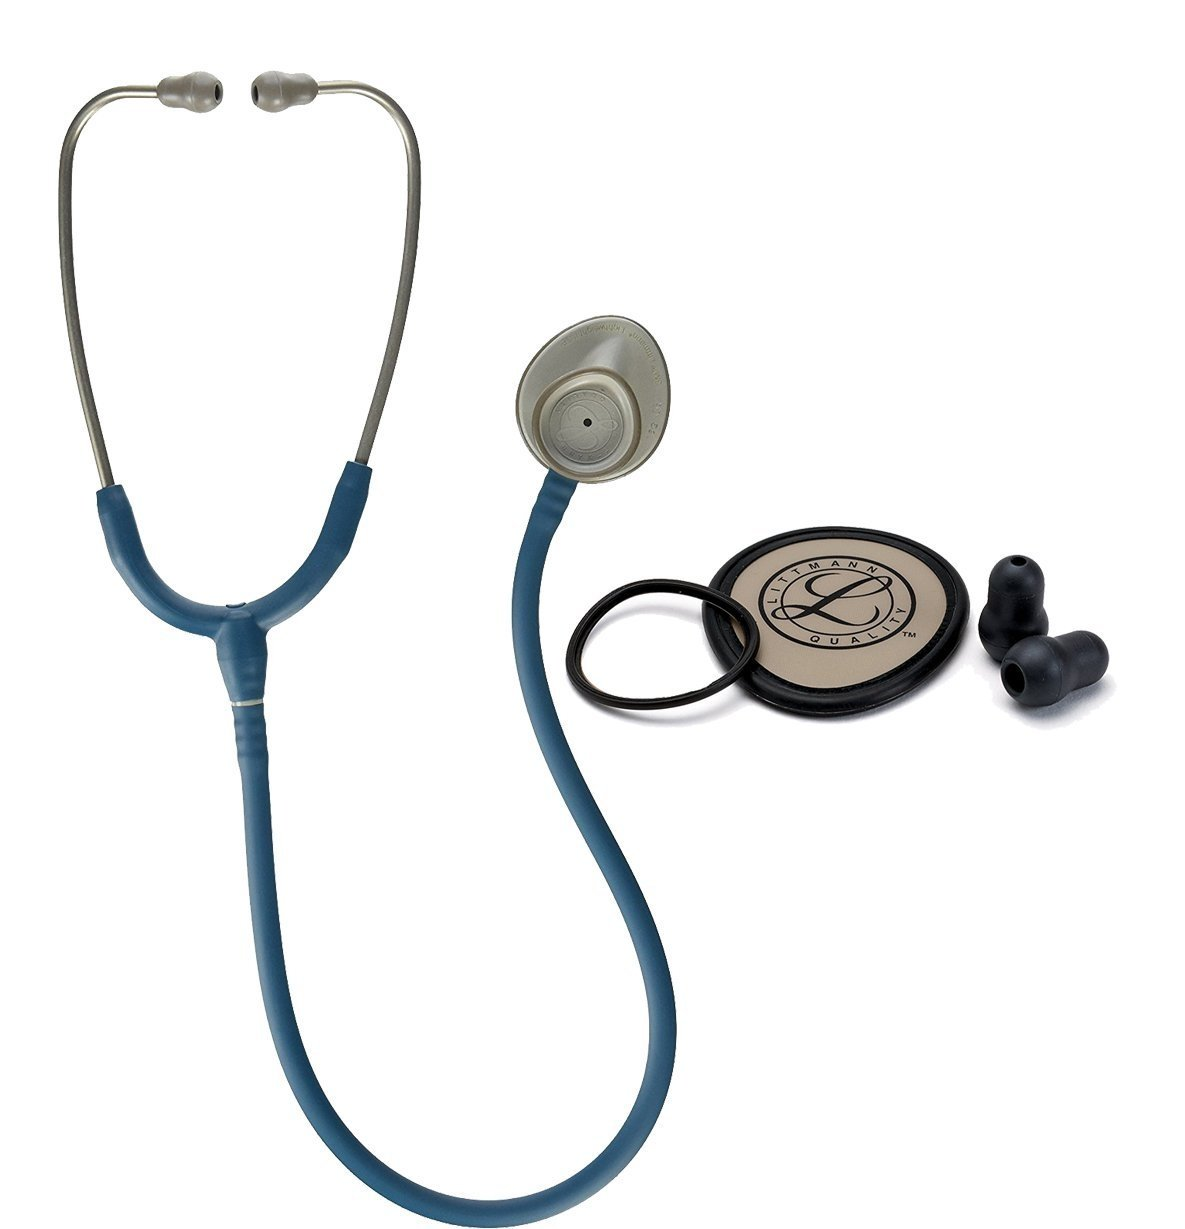 3M Littman 28 Inch Lightweight II S.E. Stethoscope - Caribbean Blue Bundled with Spare Parts Kit - 2 Items Bundled by Maven Gifts